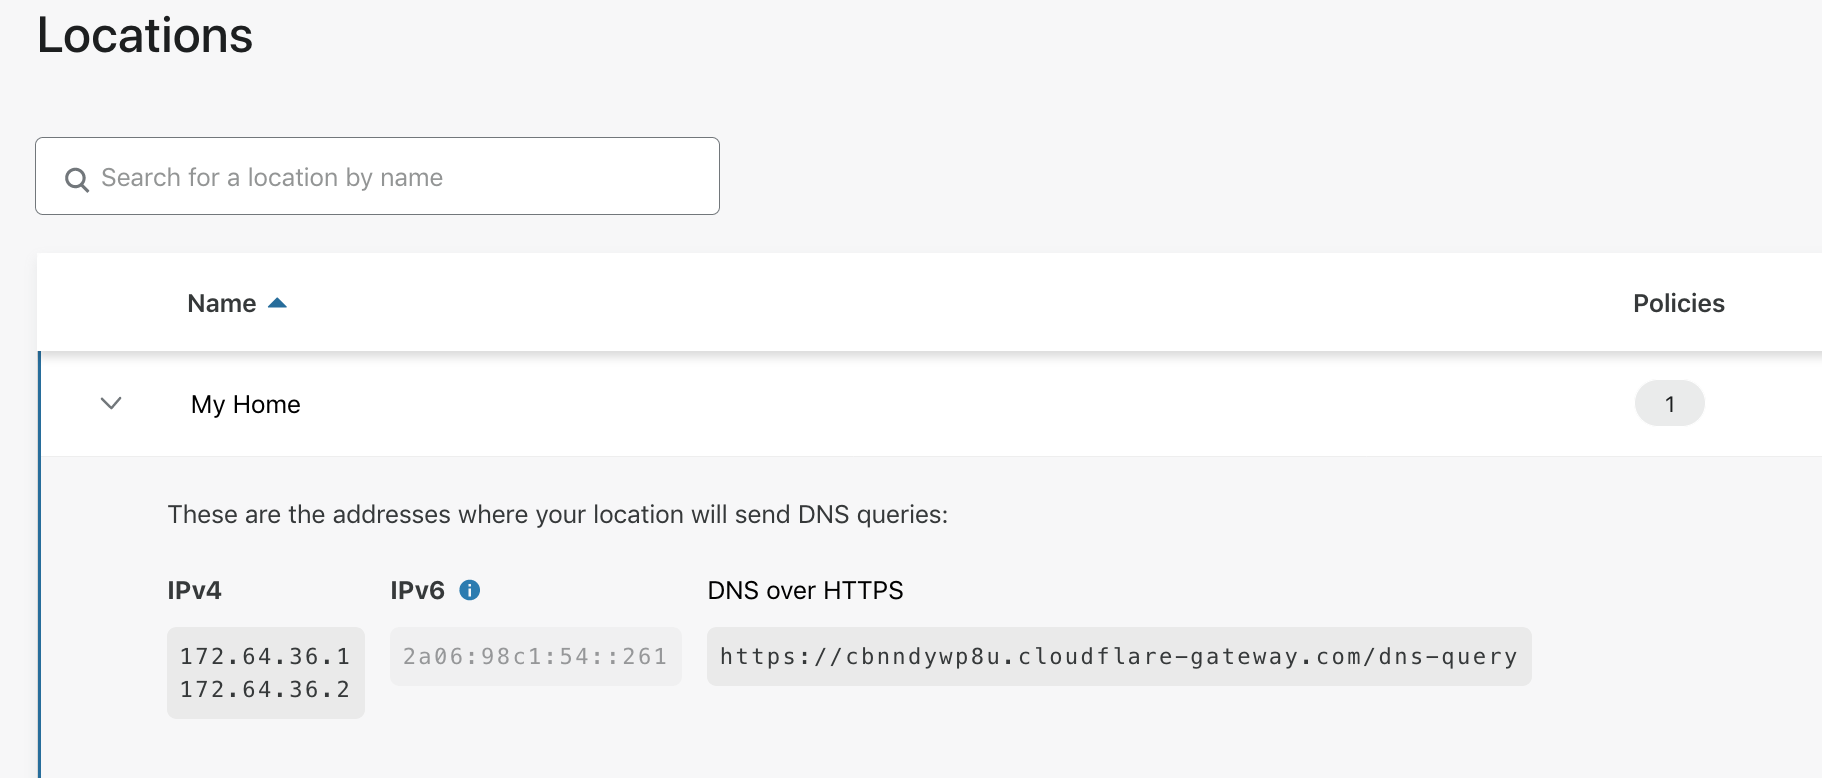 Deploying Gateway using a Raspberry Pi, DNS over HTTPS and Pi-hole